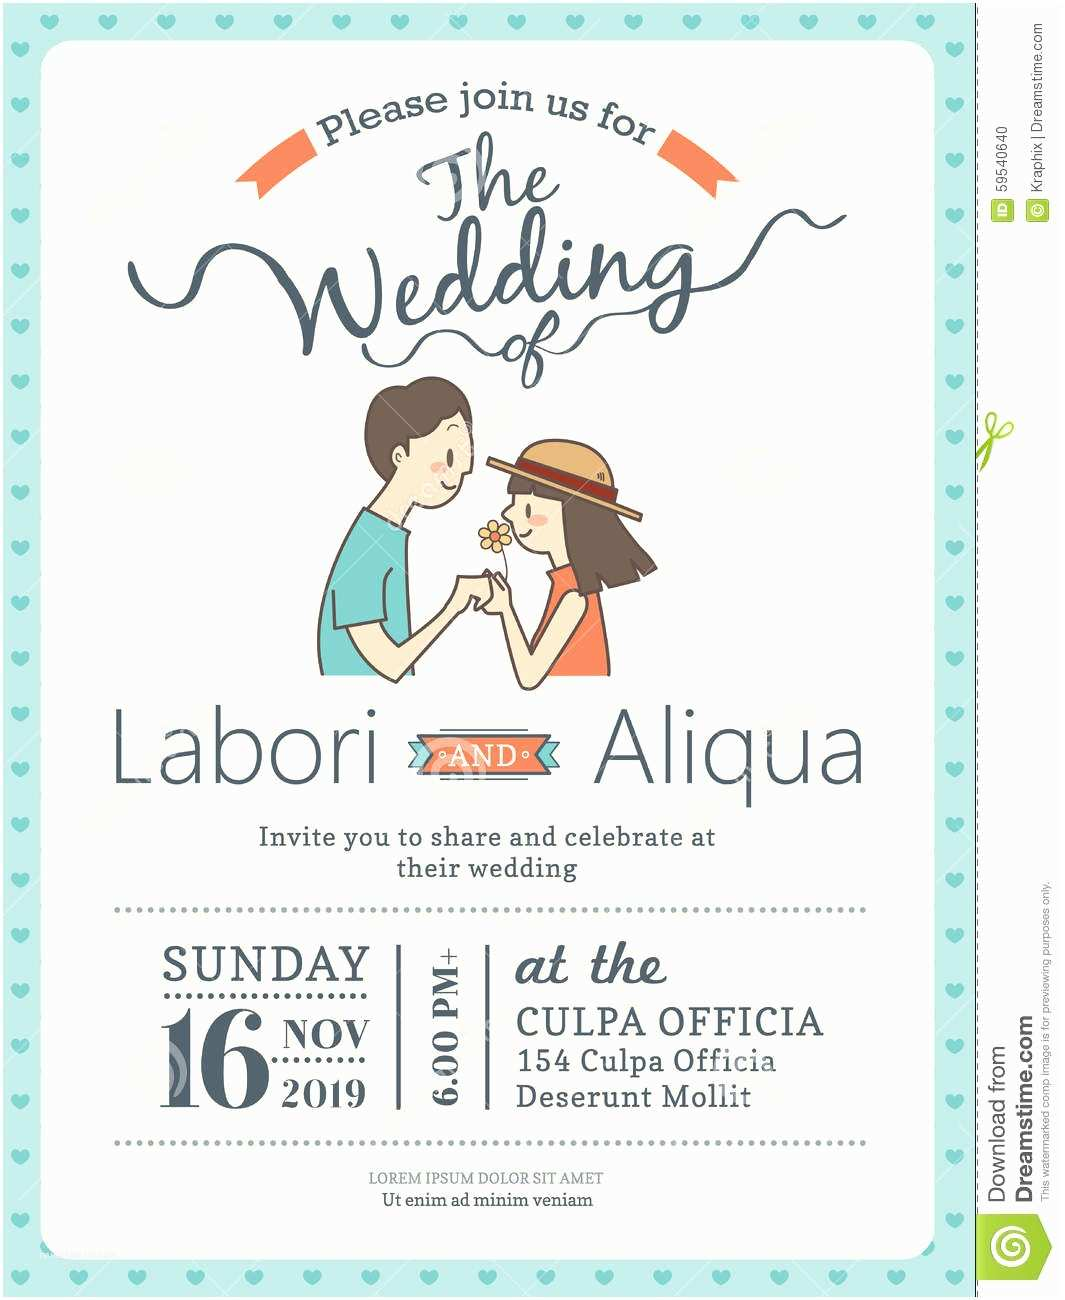 Wedding Invitation Time Wedding Invitation Card Template with Cute Groom and Bride